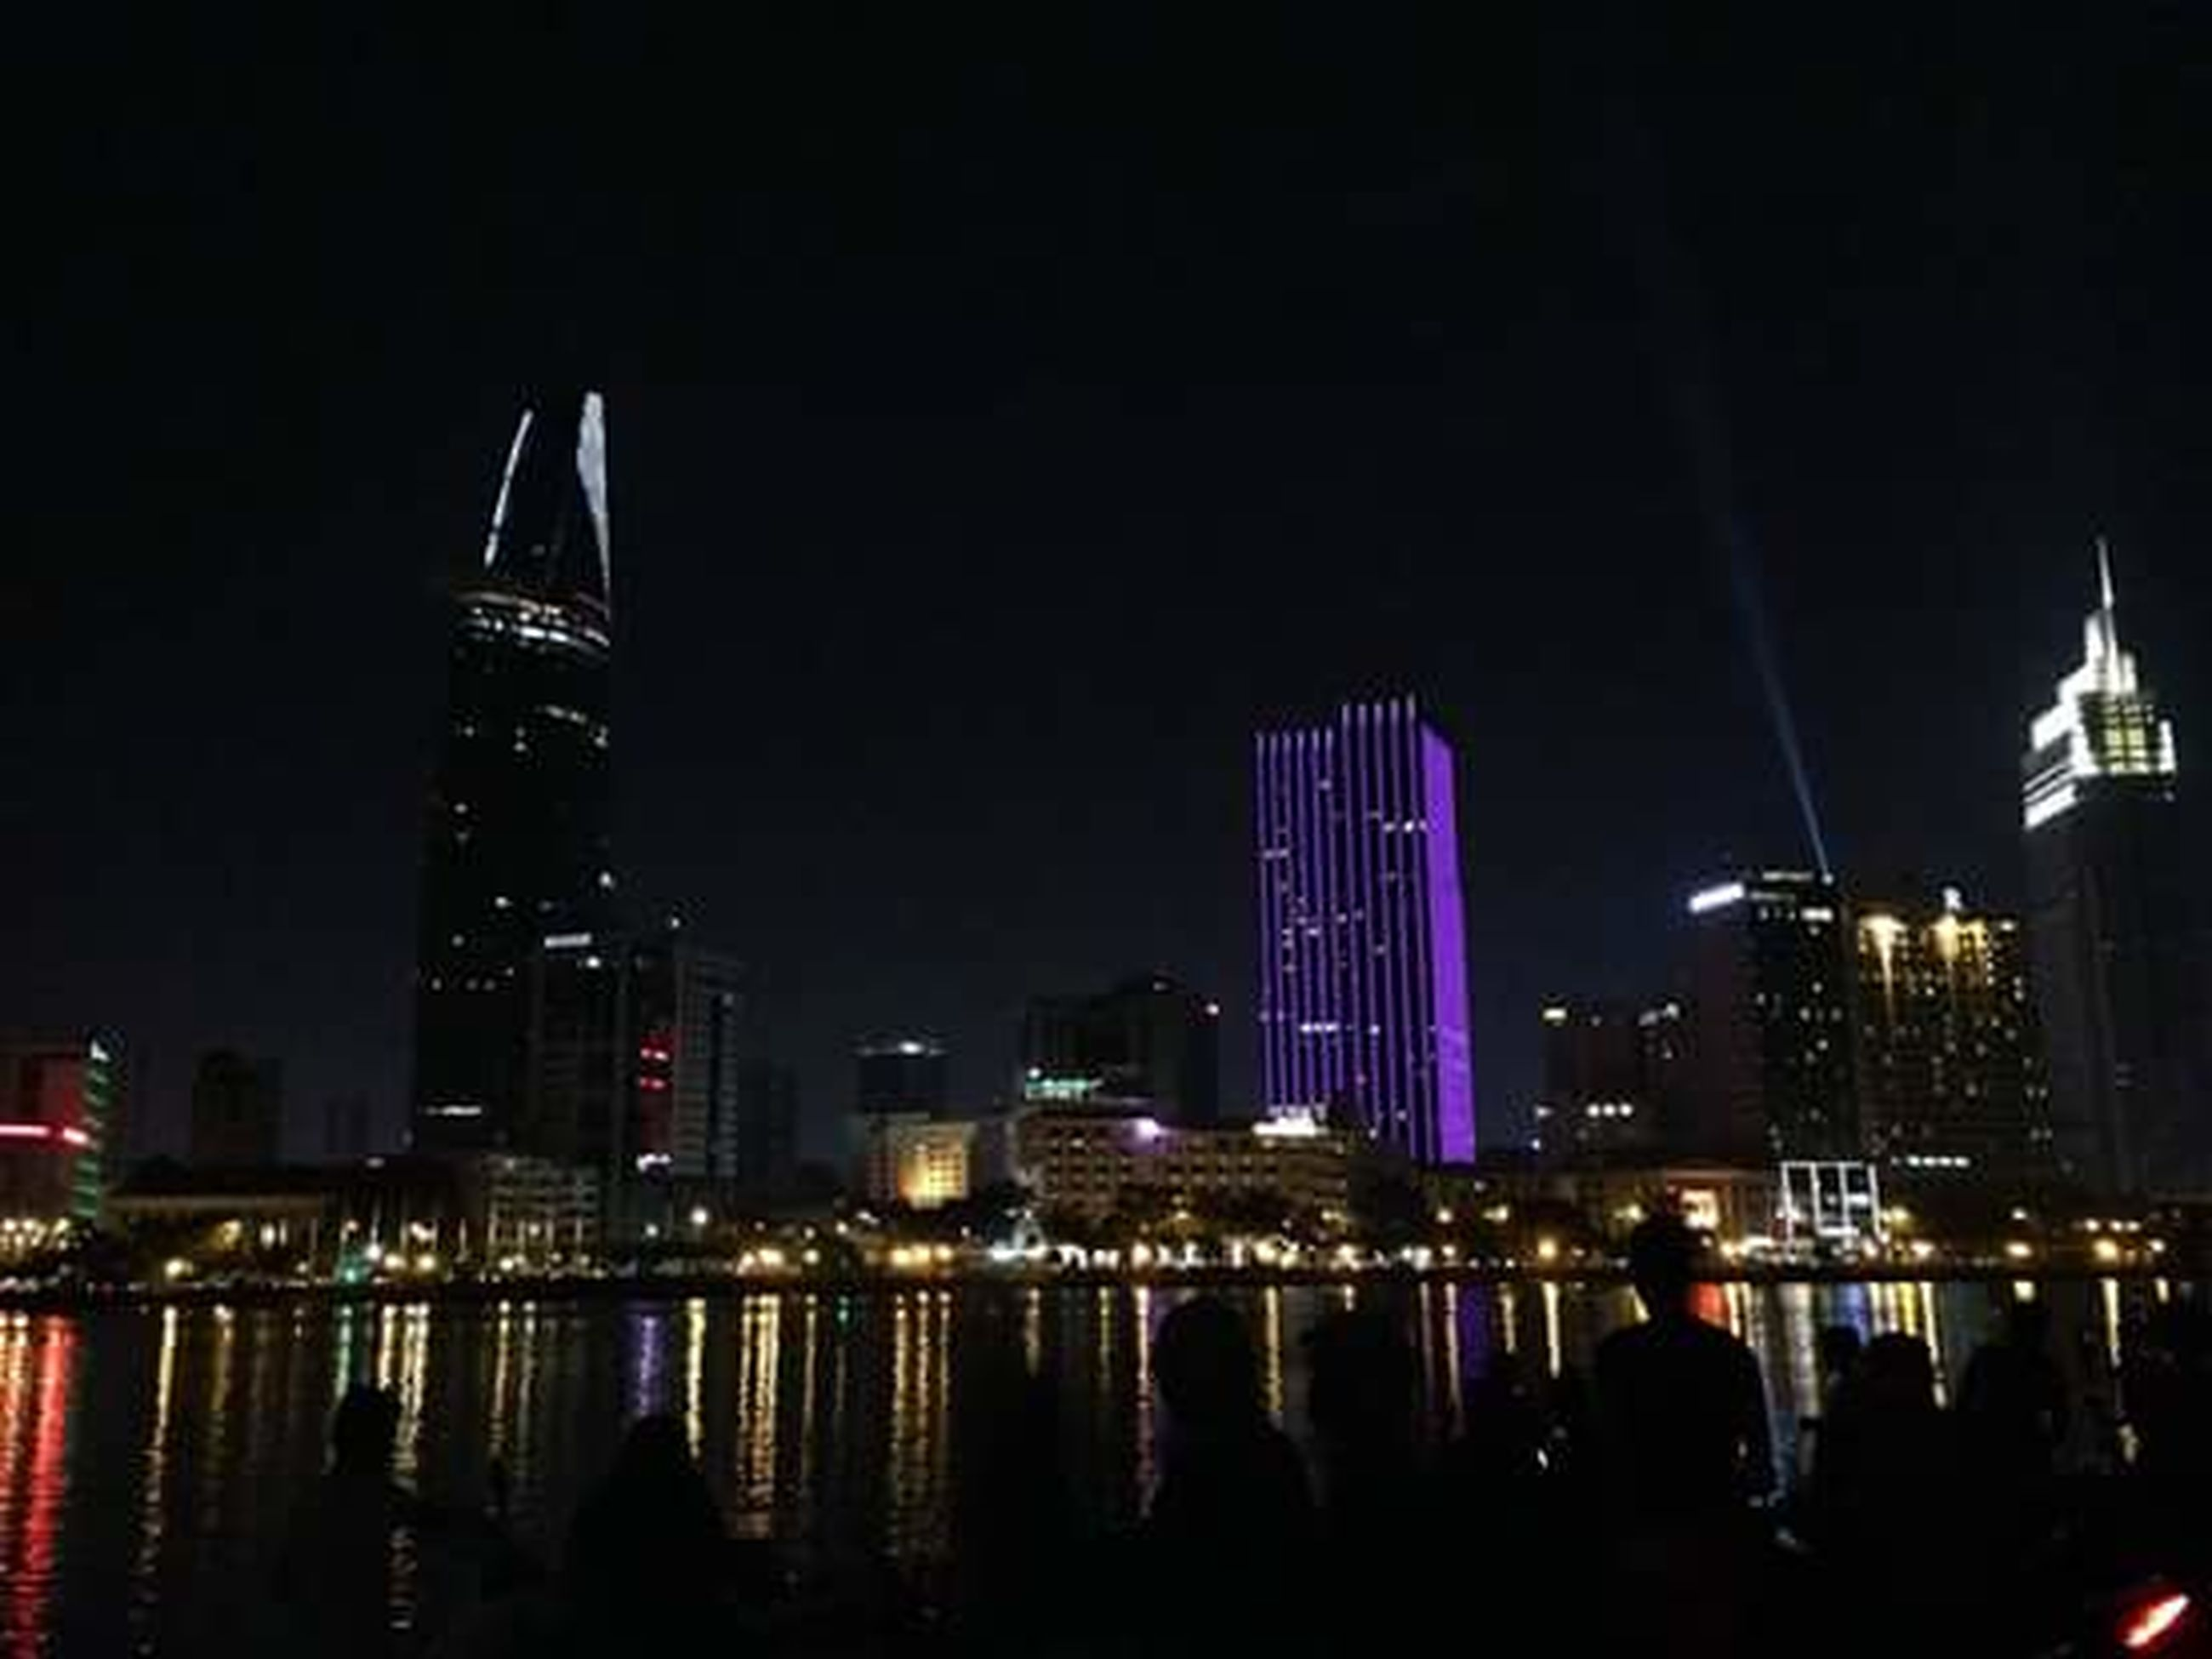 night, illuminated, city, architecture, urban skyline, cityscape, modern, skyscraper, building exterior, tower, sky, travel destinations, city life, outdoors, no people, downtown district, nightlife